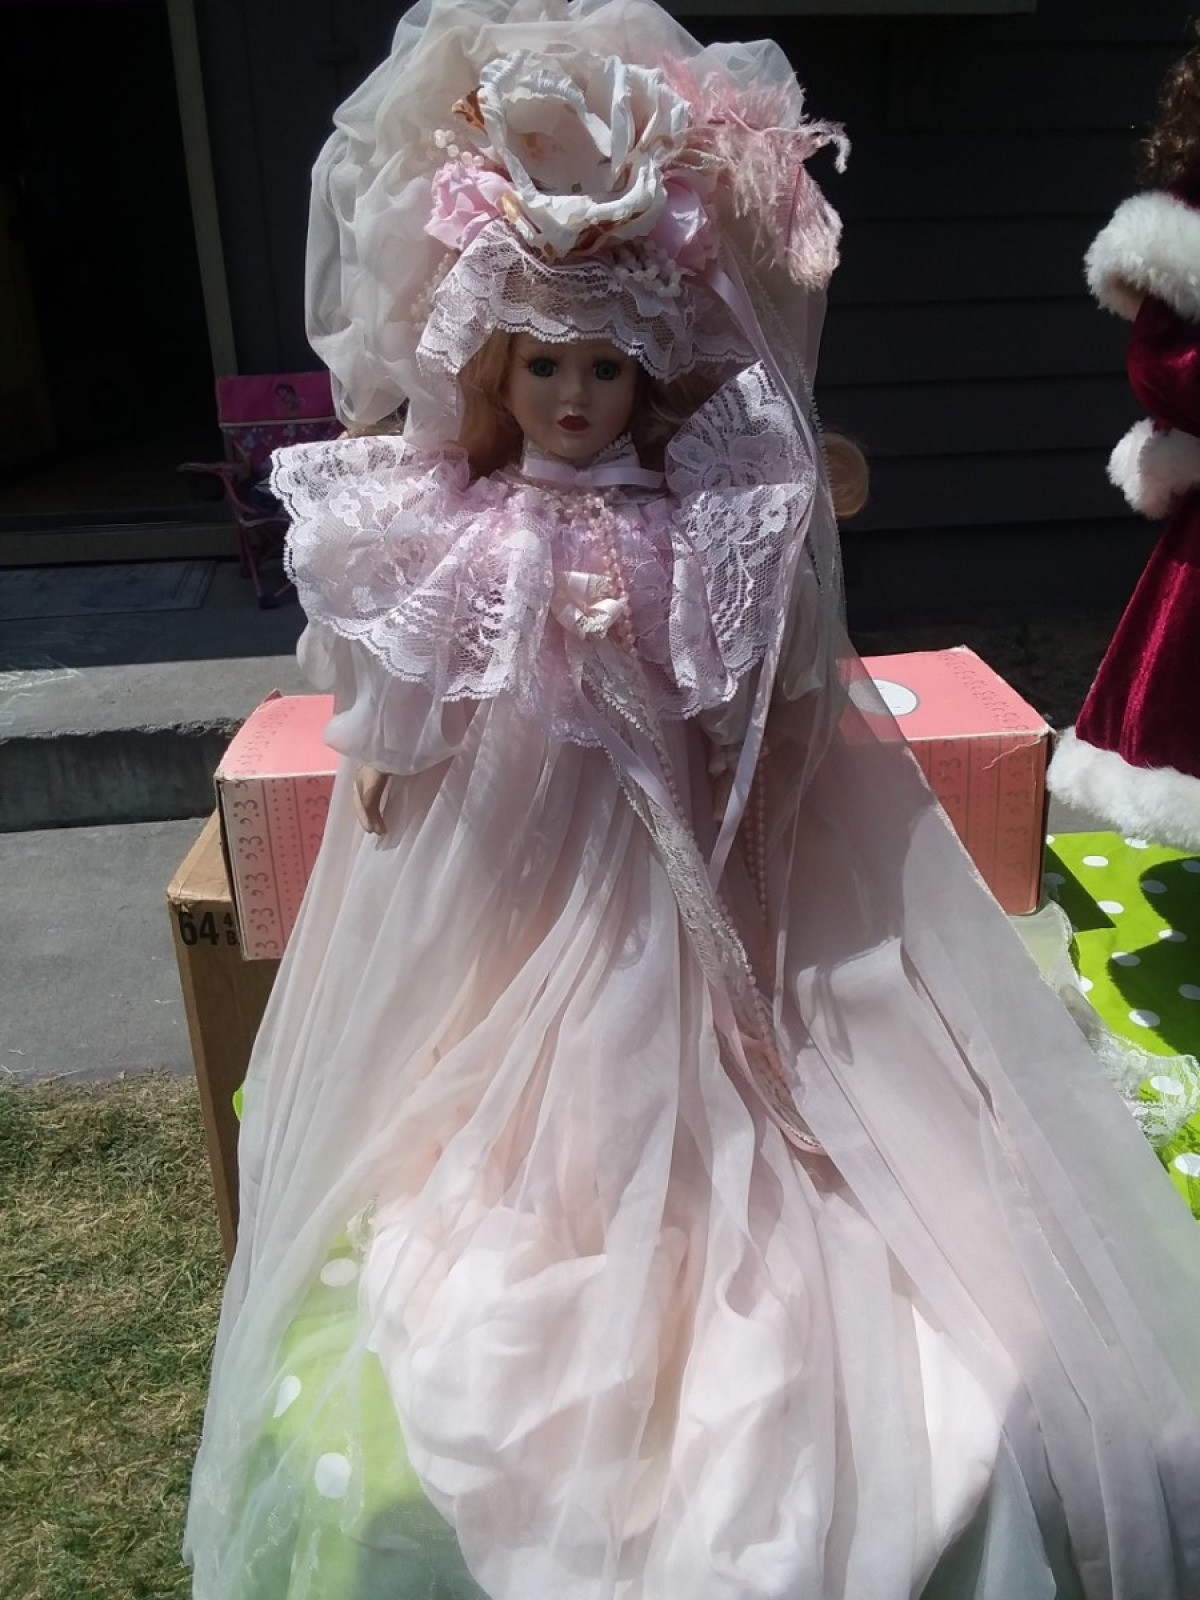 Finding the Value of Brinn Porcelain Dolls?  ThriftyFun